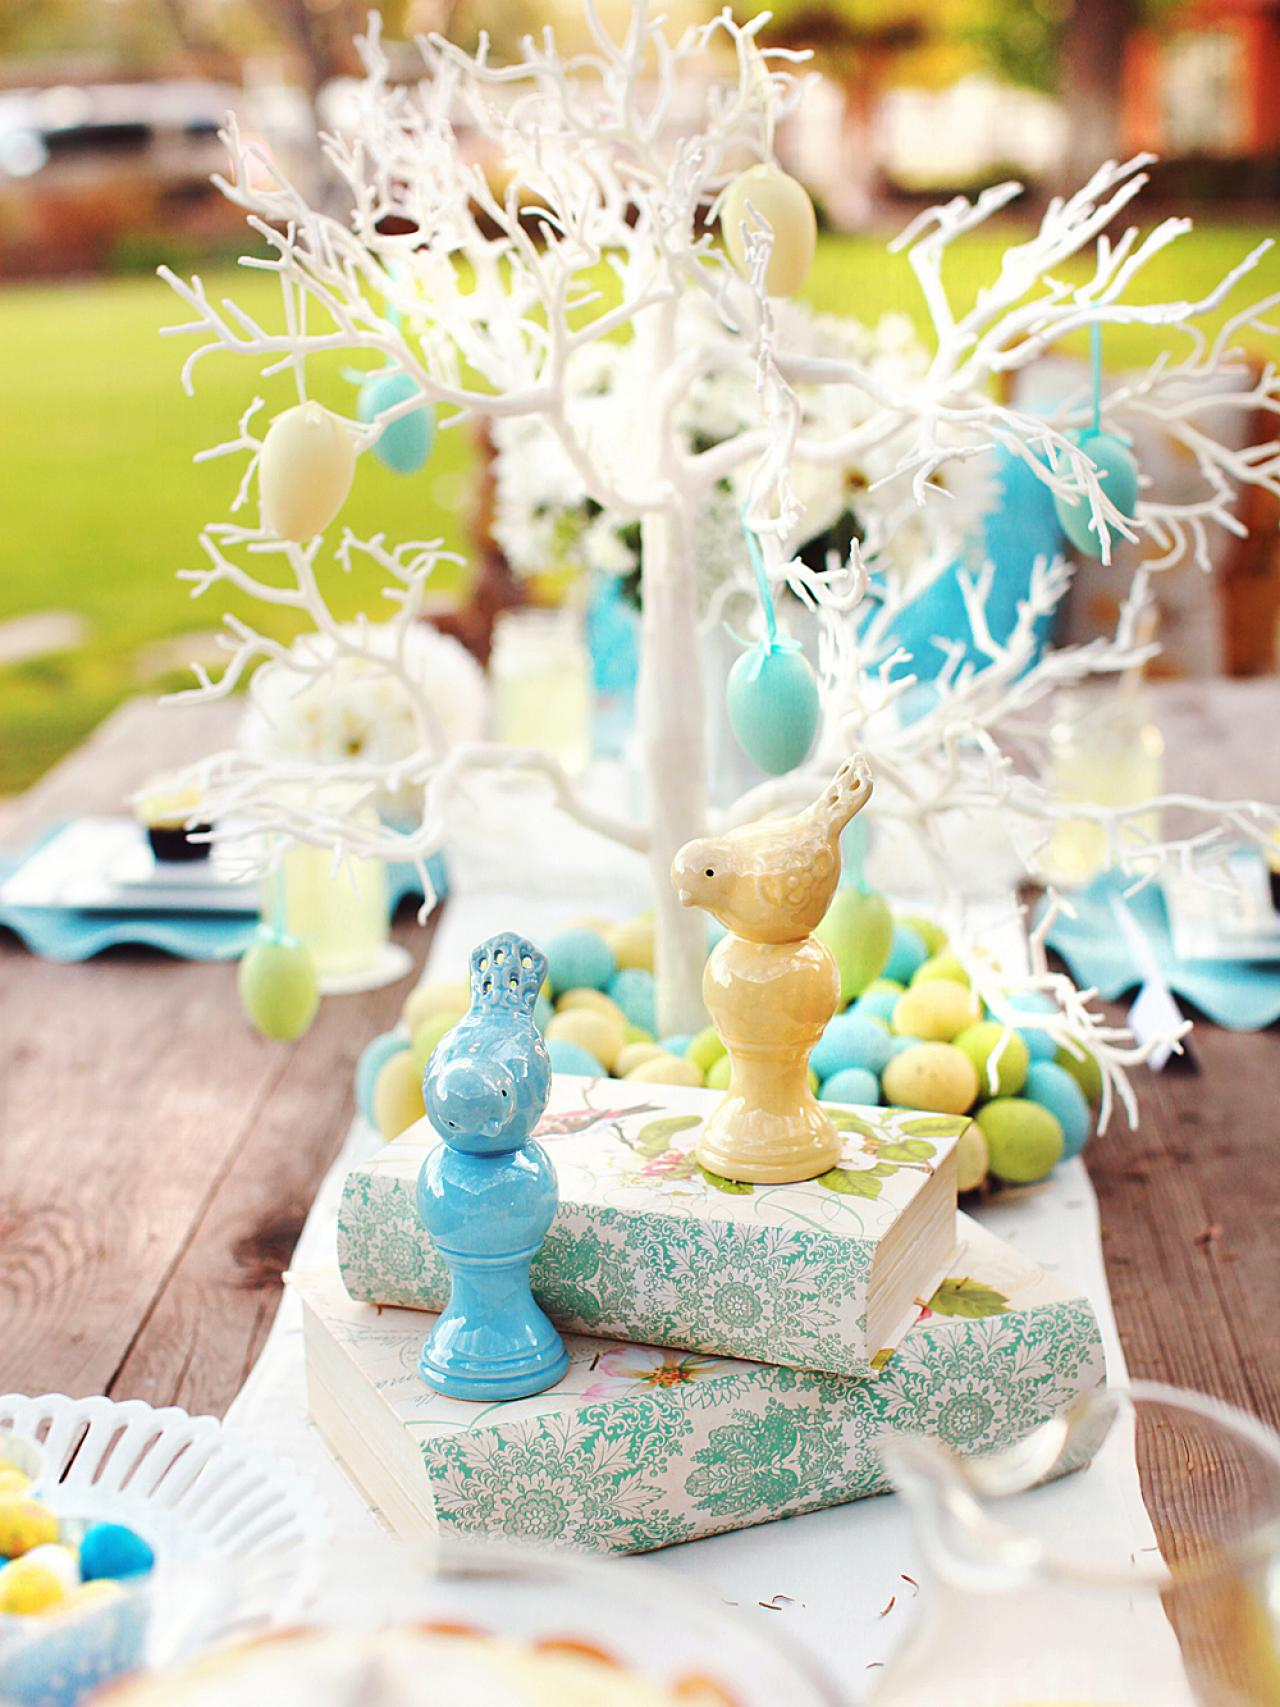 Easter table setting ideas to try entertaining